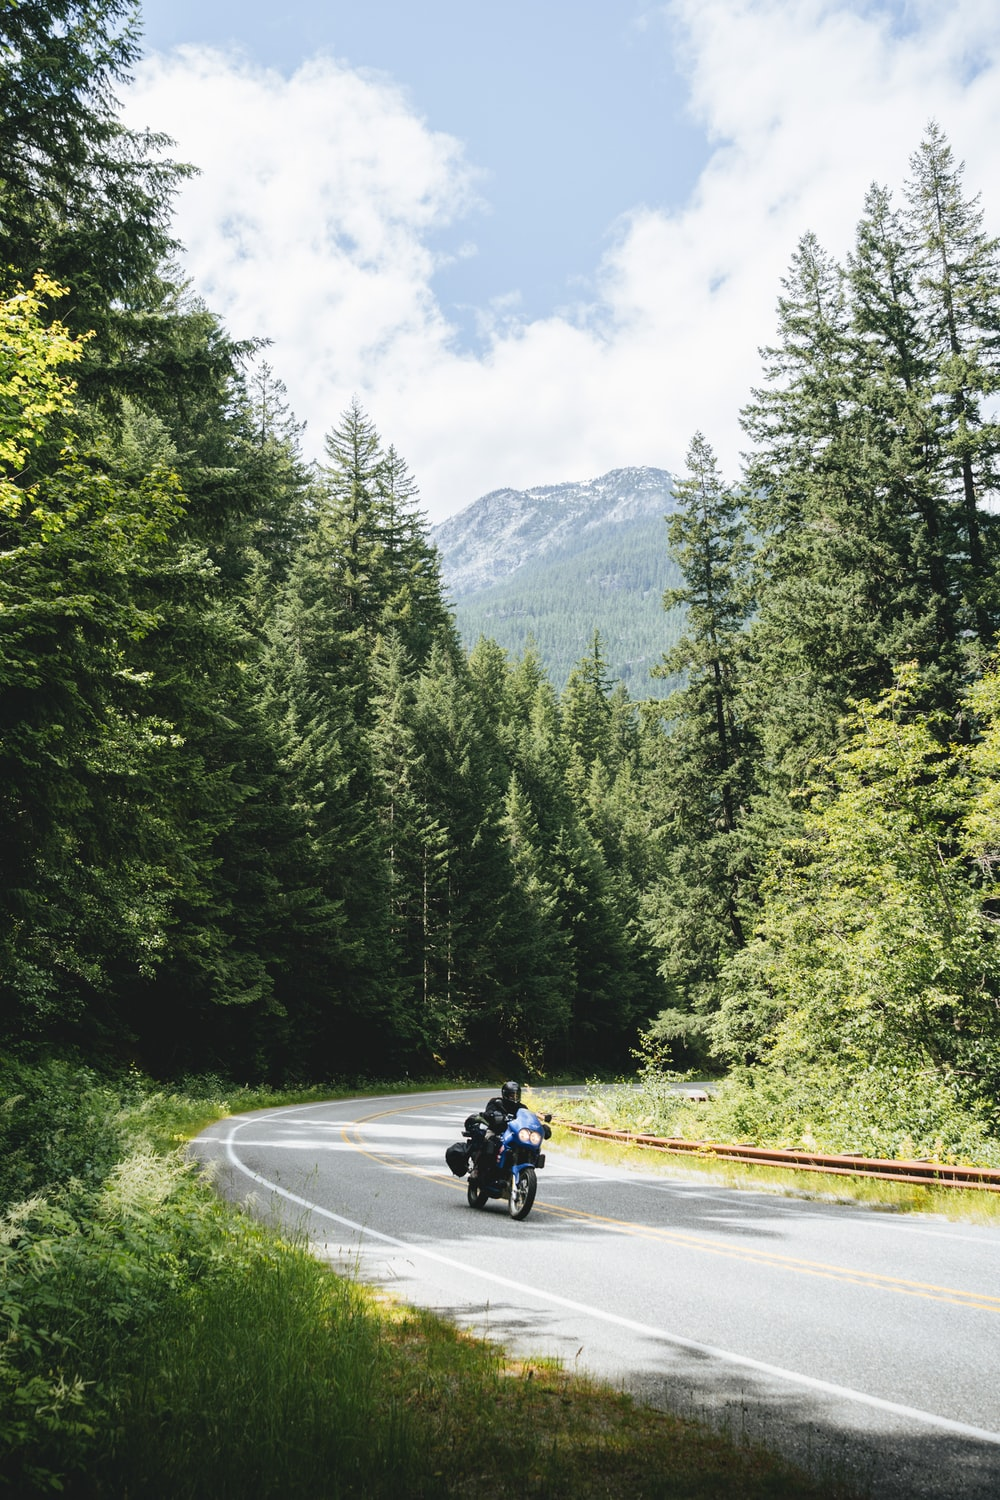 man riding motorcycle on road near green trees during daytime